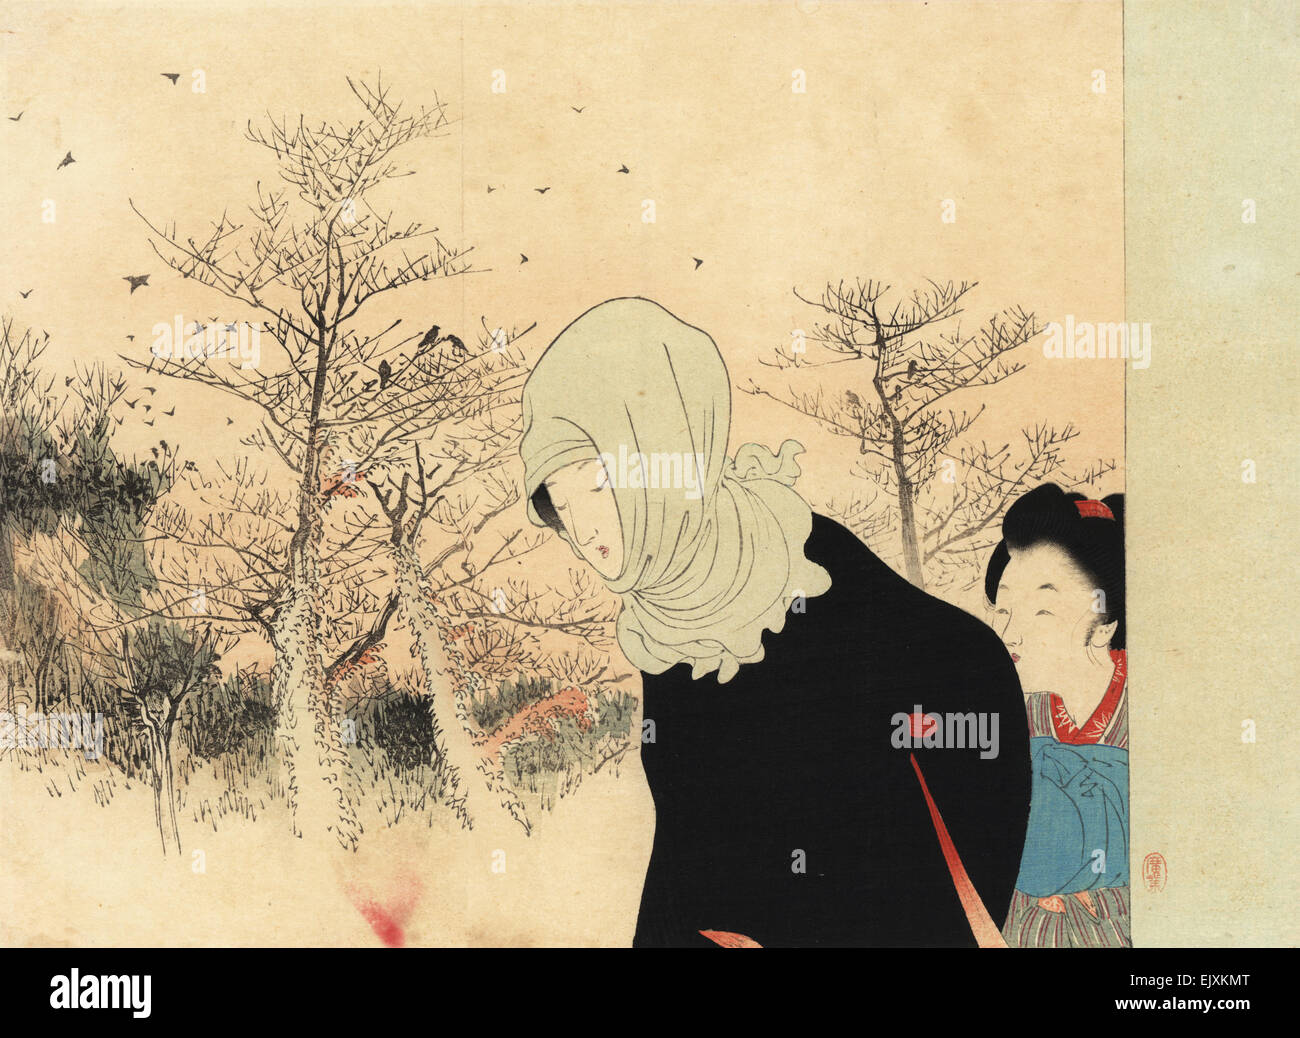 Japanese woman in scarf and kimono with maid walking in a wintry landscape with bare trees. - Stock Image